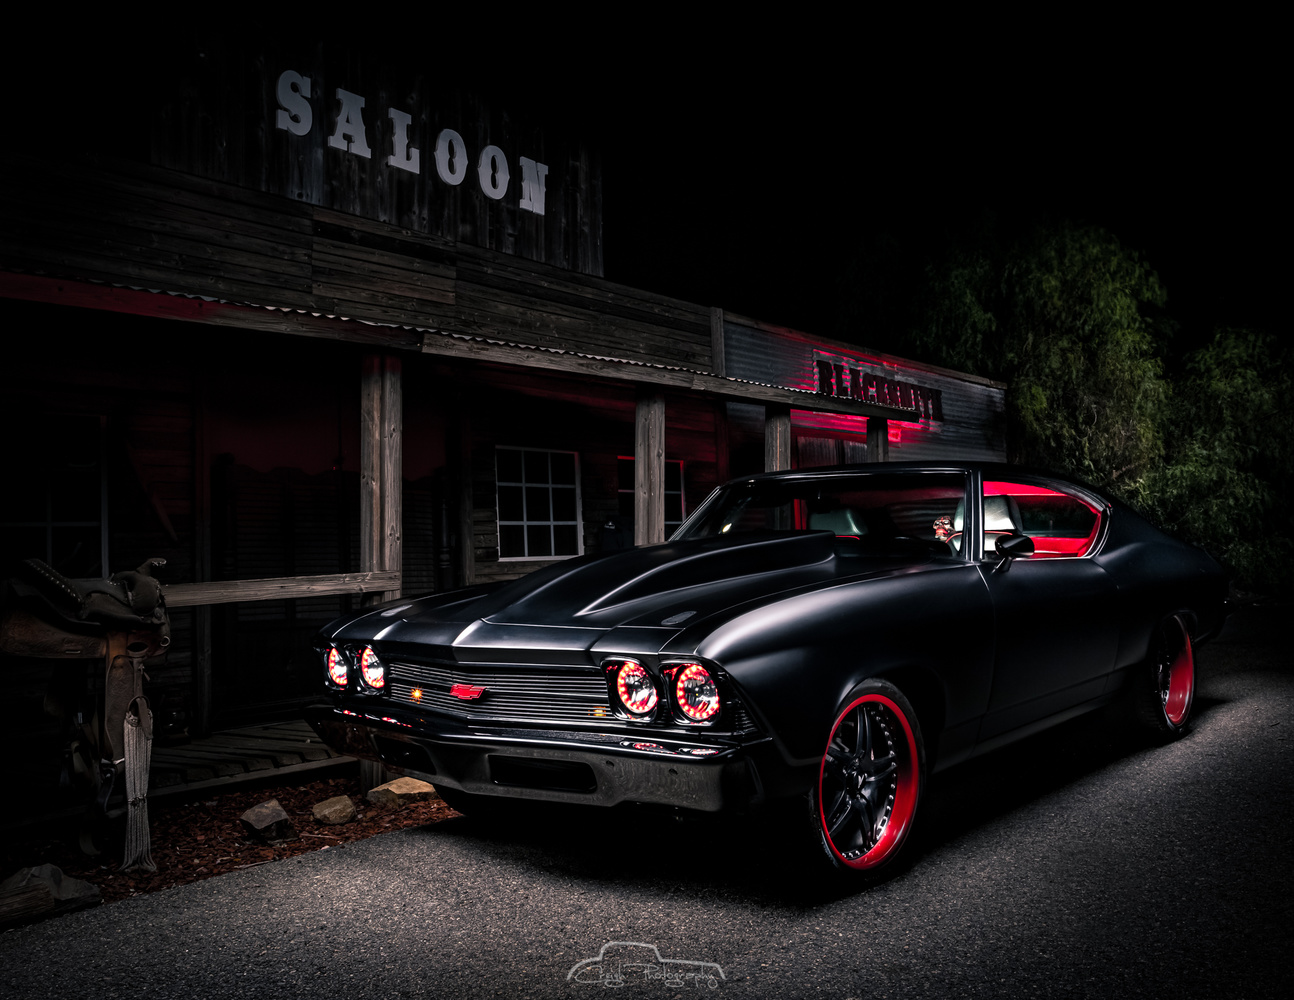 '69 Chevelle by Creigh McIntyre